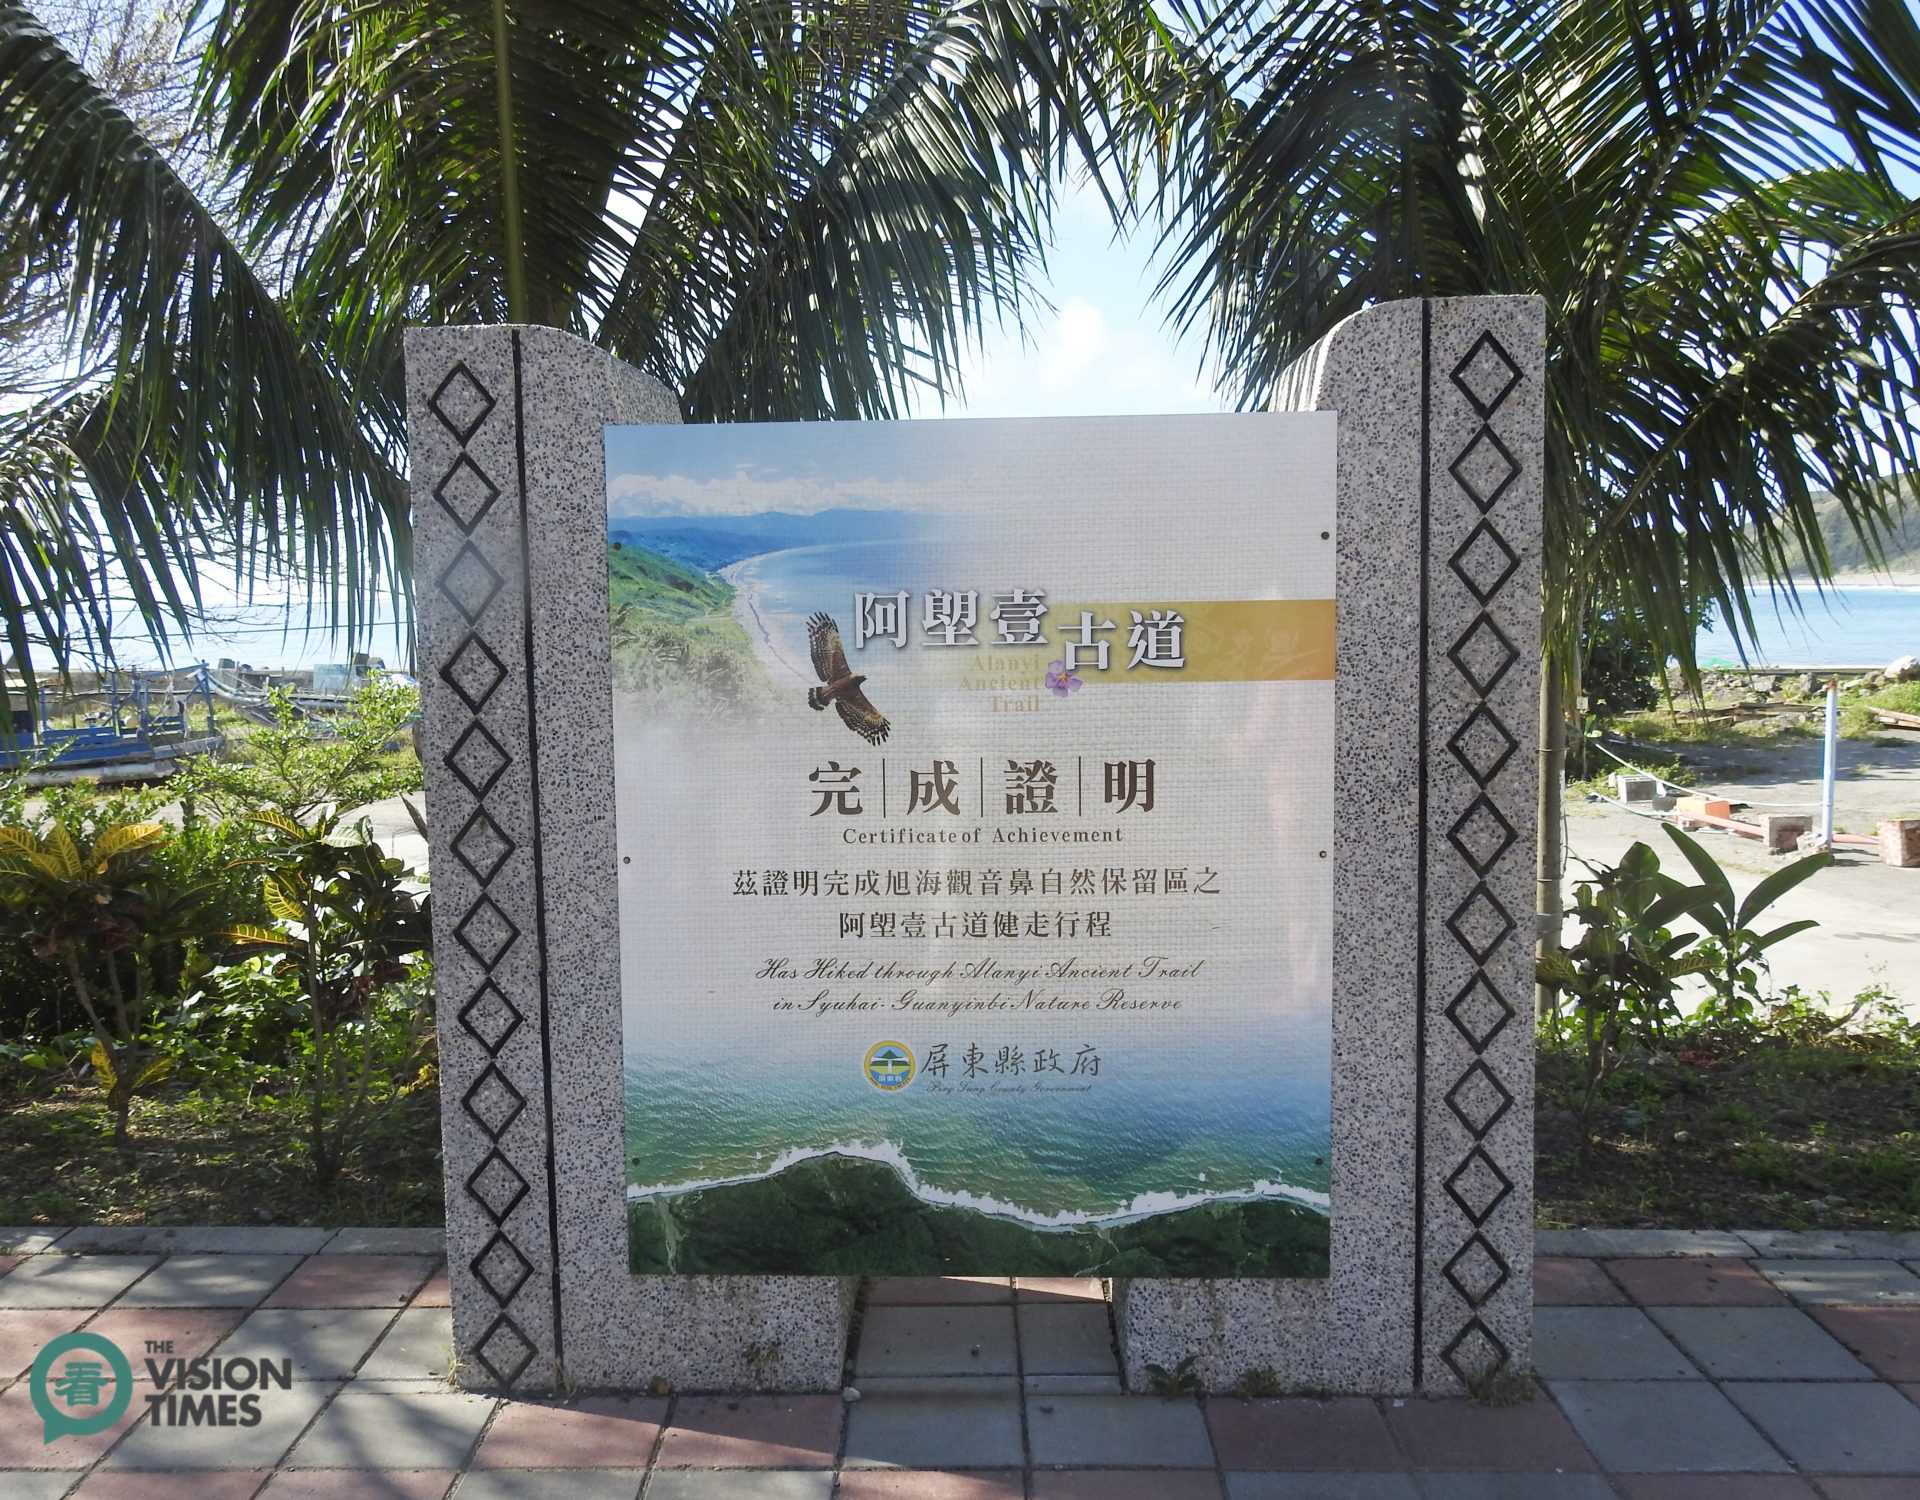 Hikers may like to pose with this sign to show that they have completed hiking on Alangyi Ancient Trail. (Image: Billy Shyu / Vision Times)